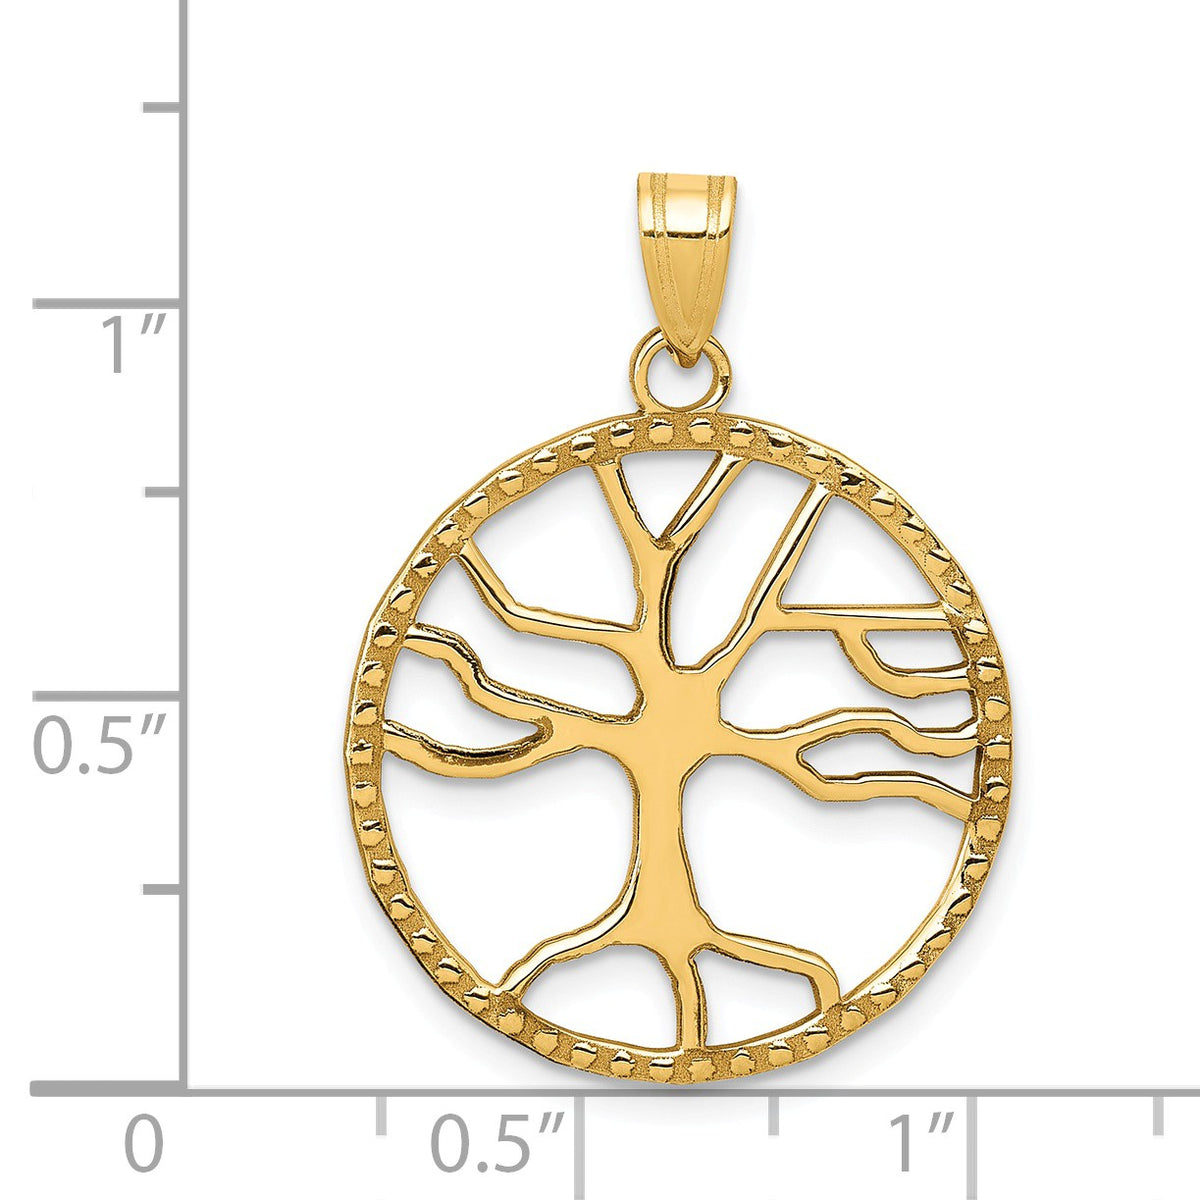 Alternate view of the 14k Yellow Gold Round Framed Tree of Life Pendant, 20mm (3/4 inch) by The Black Bow Jewelry Co.